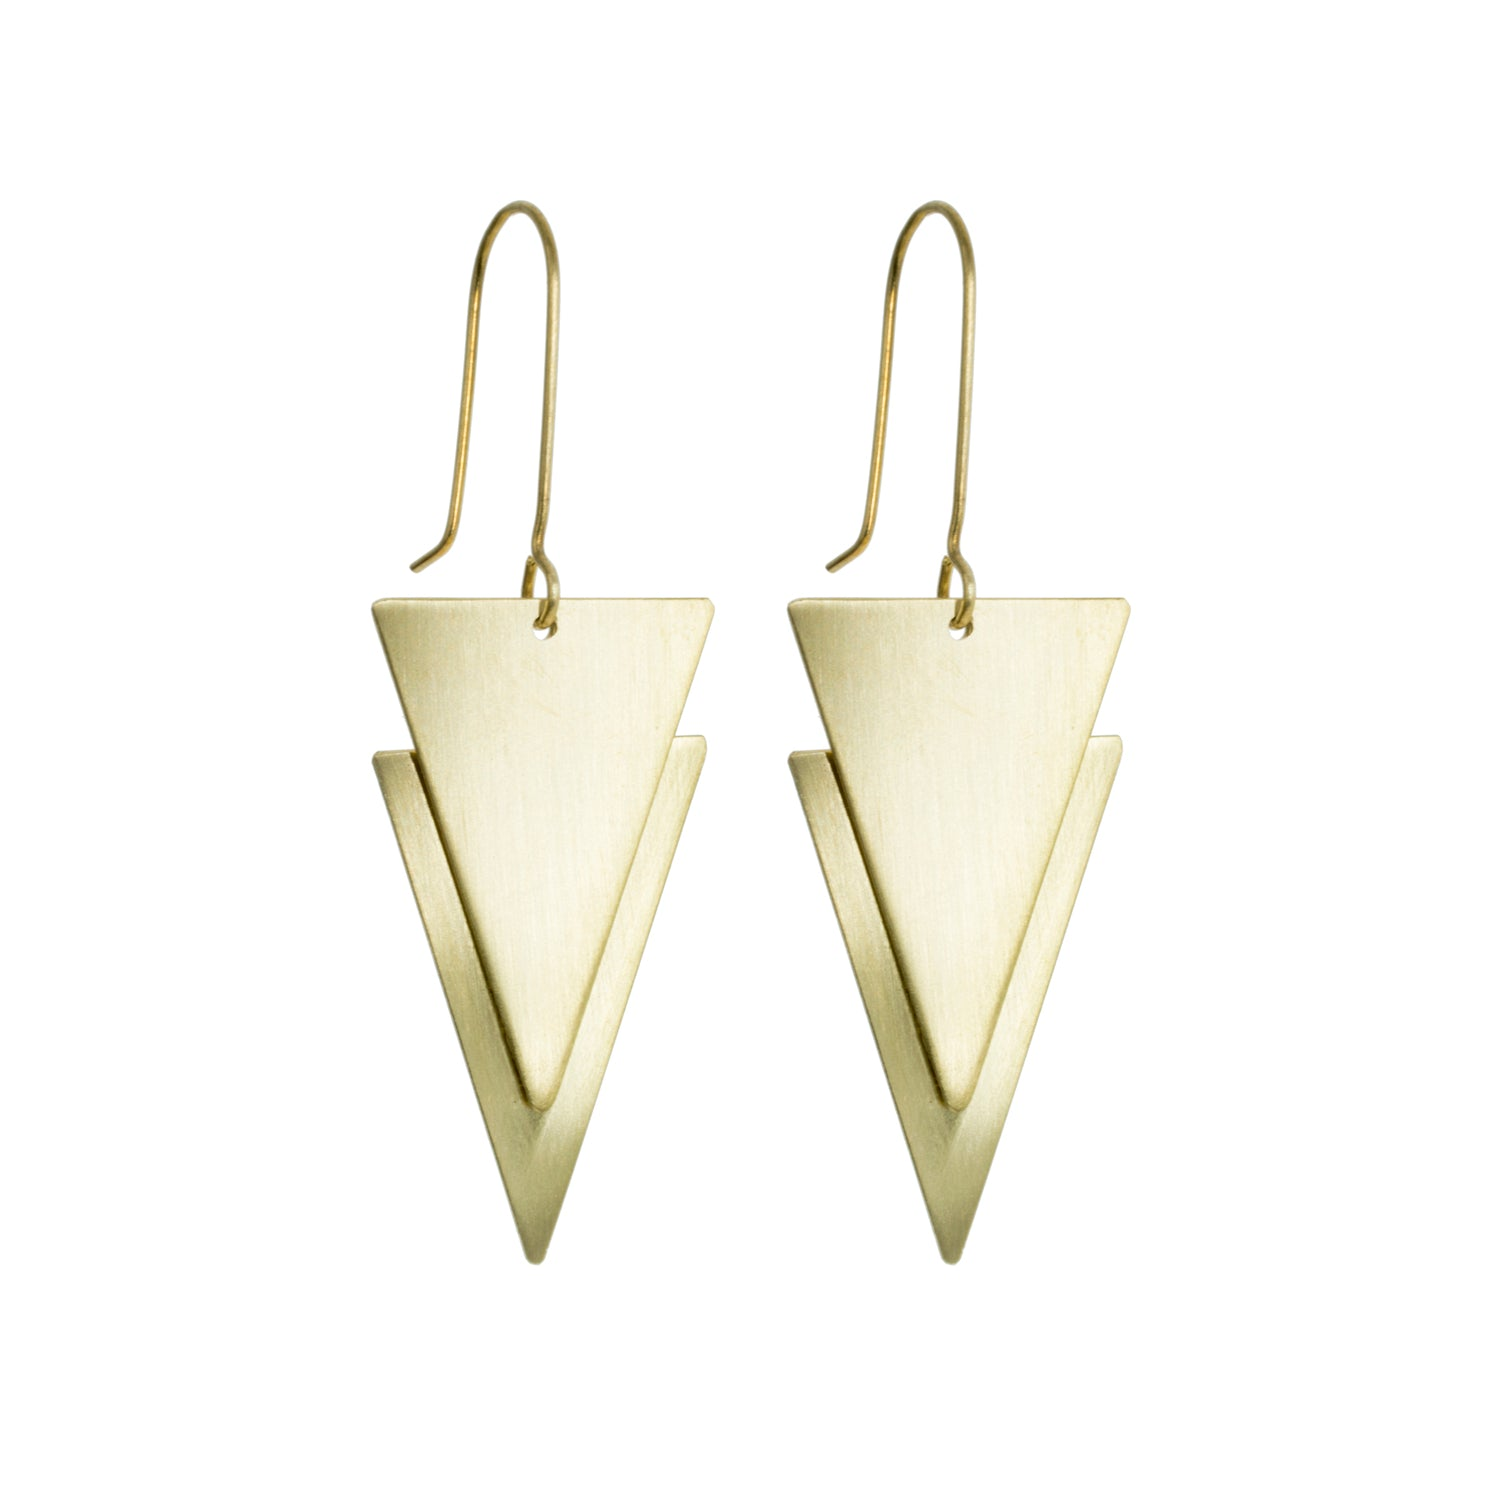 Geometric 'Lucie' Brass Earrings - Loola Loves UK